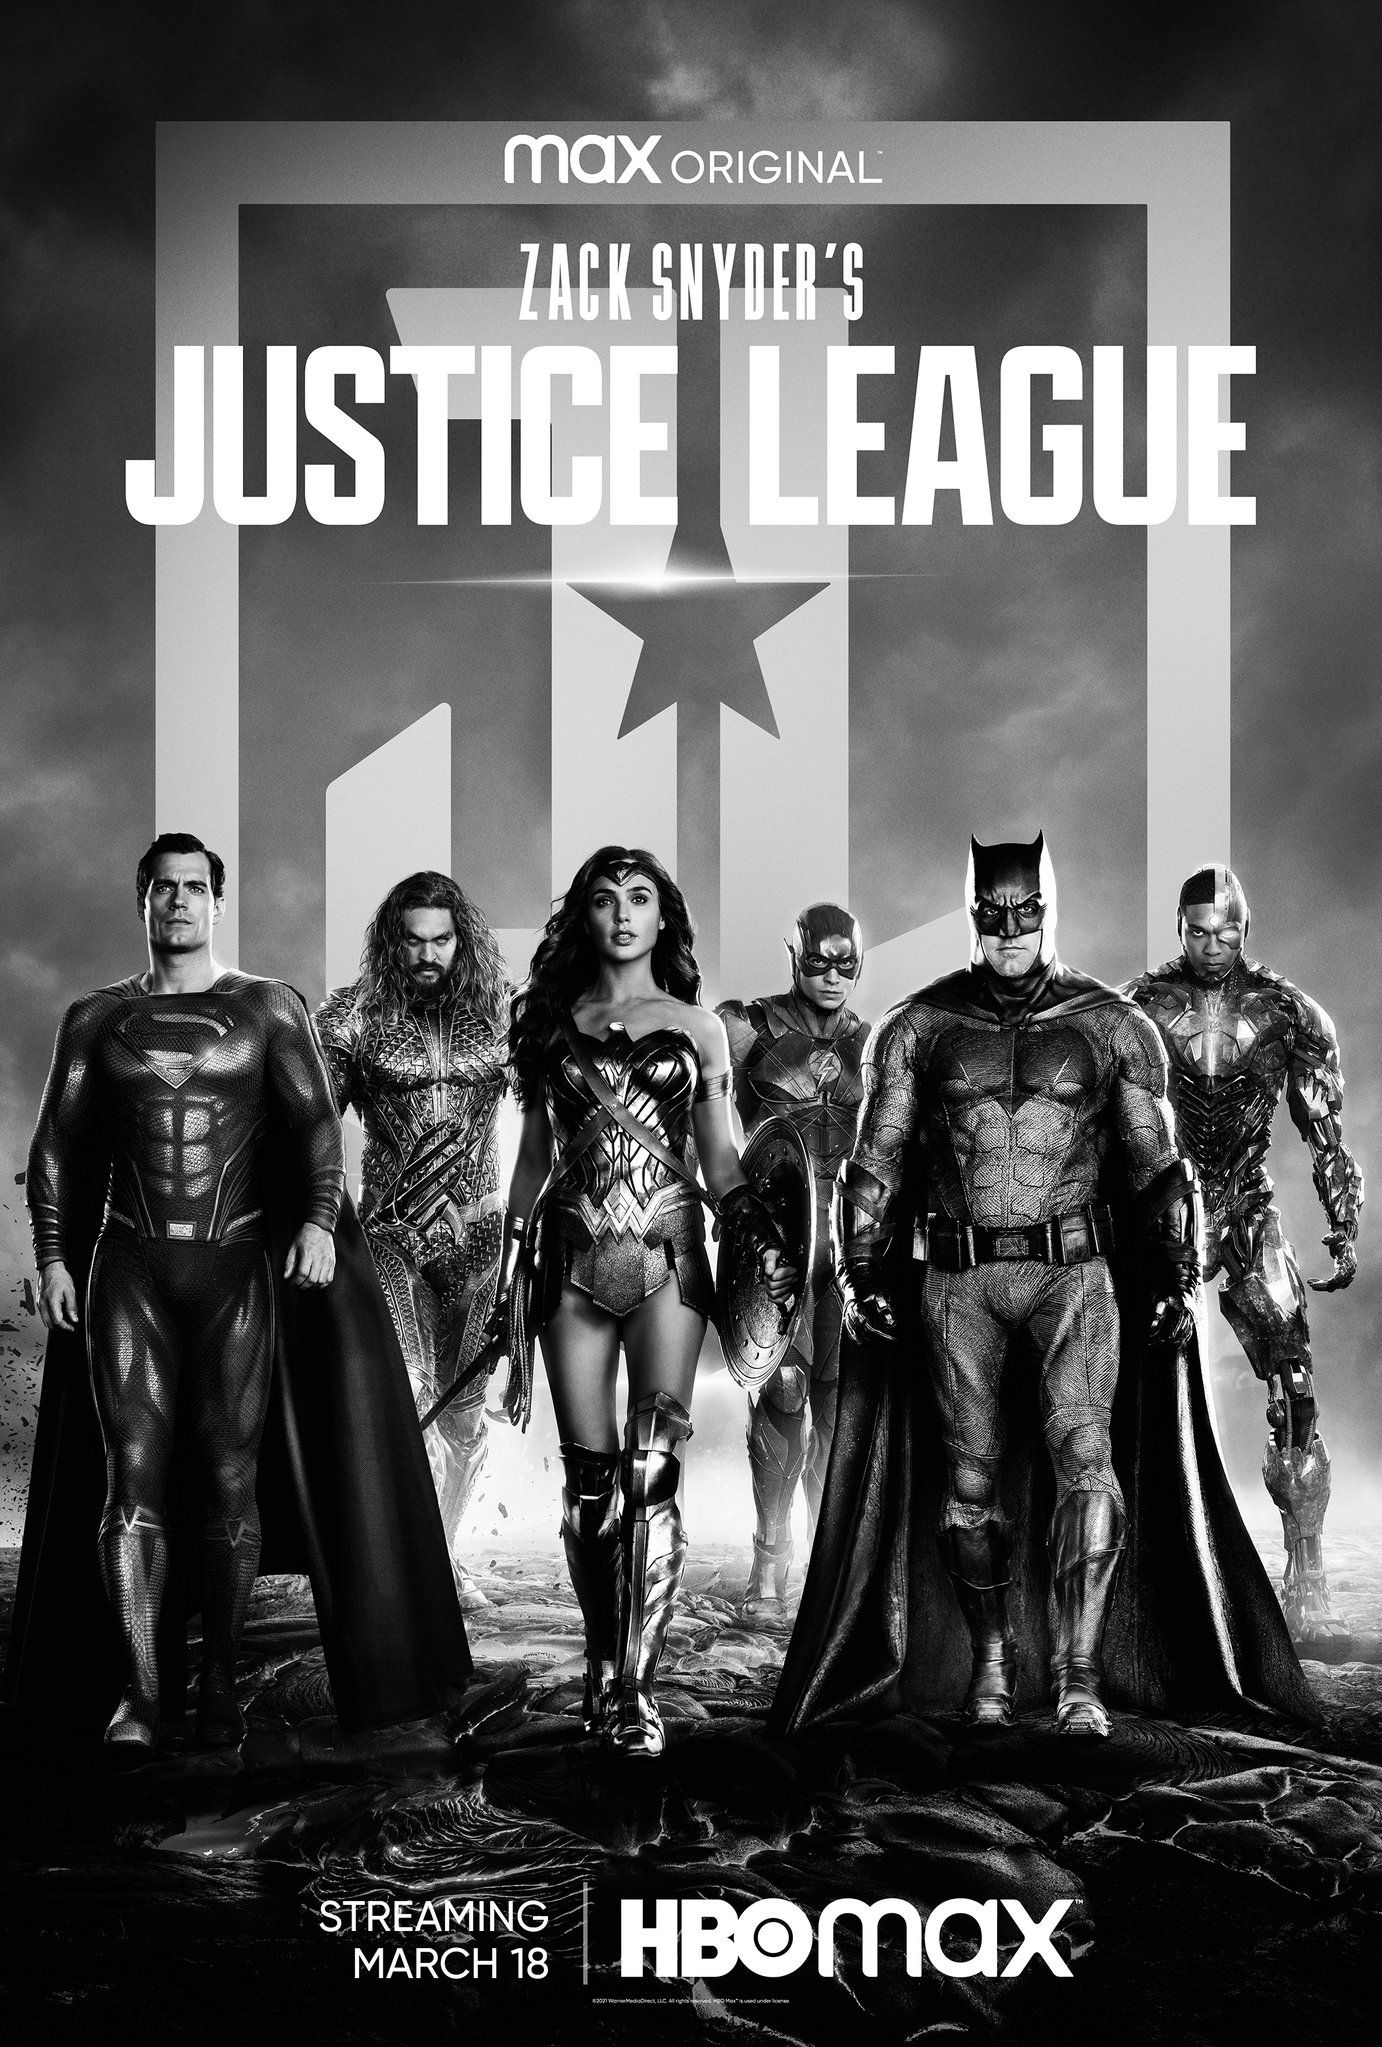 Zack Snyder S Justice League On Twitter In 2021 Justice League Dark Justice League Justice League Unlimited